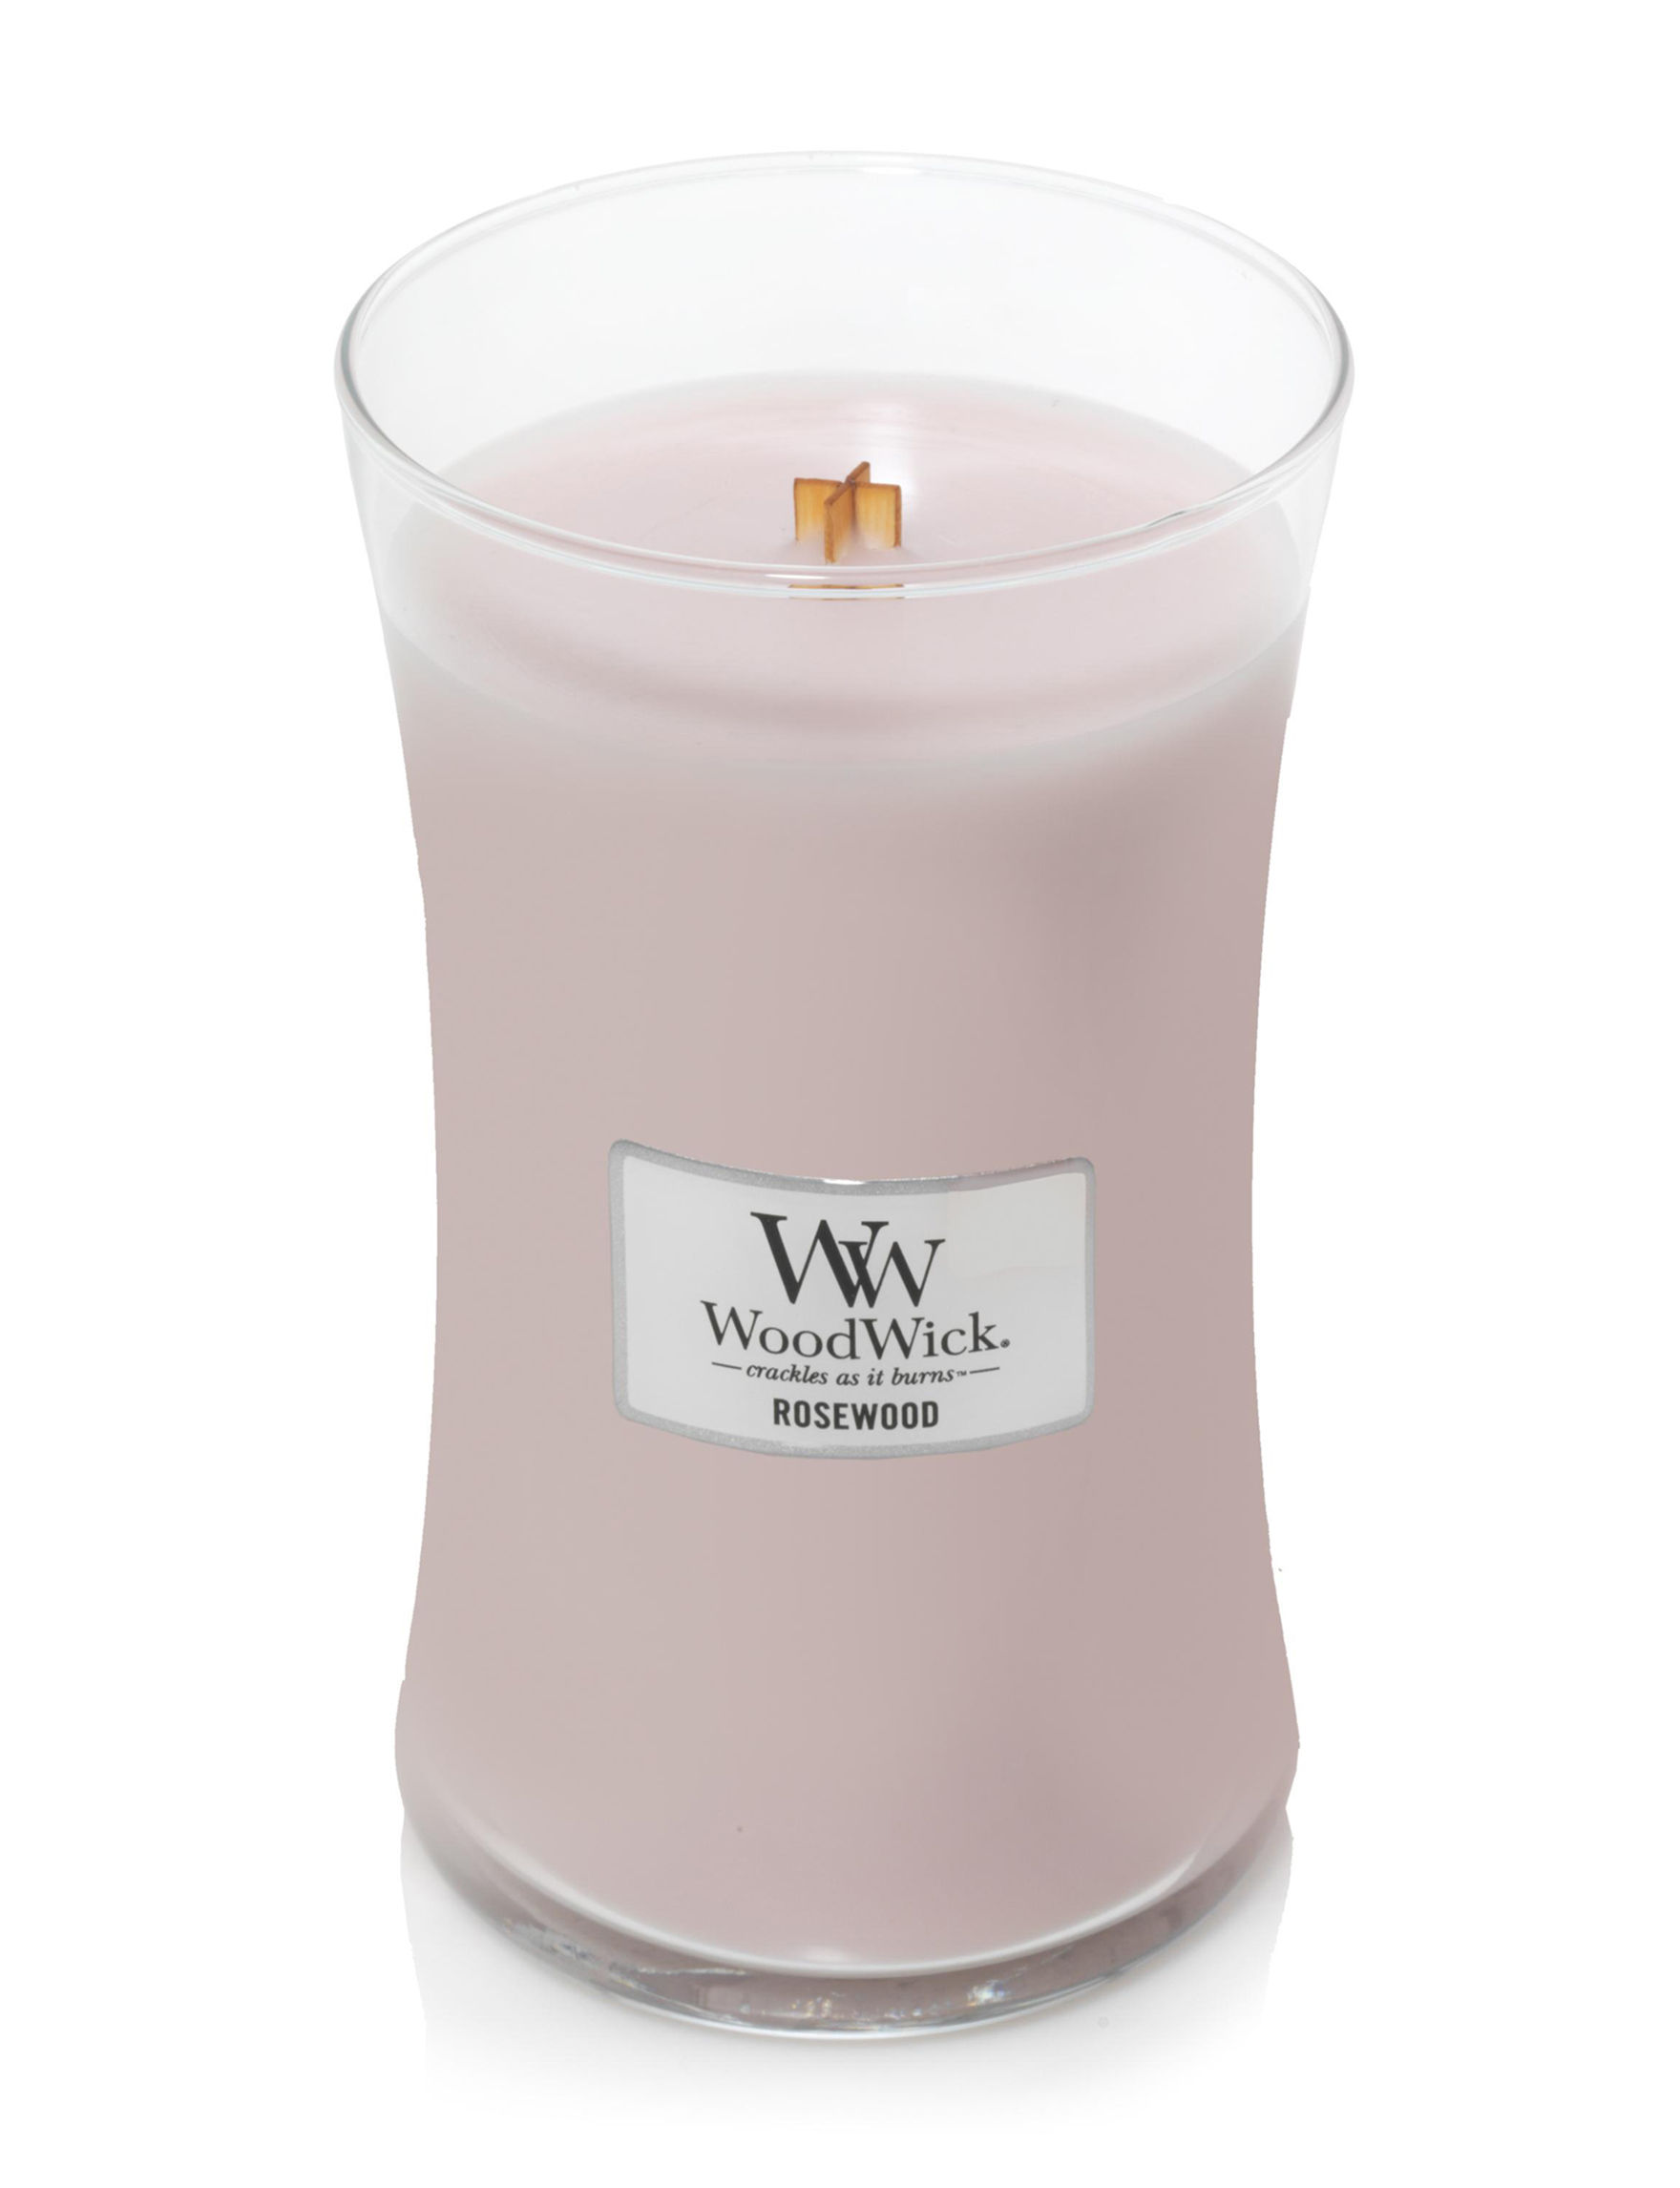 Woodwick Rosewood Candles Candles & Diffusers